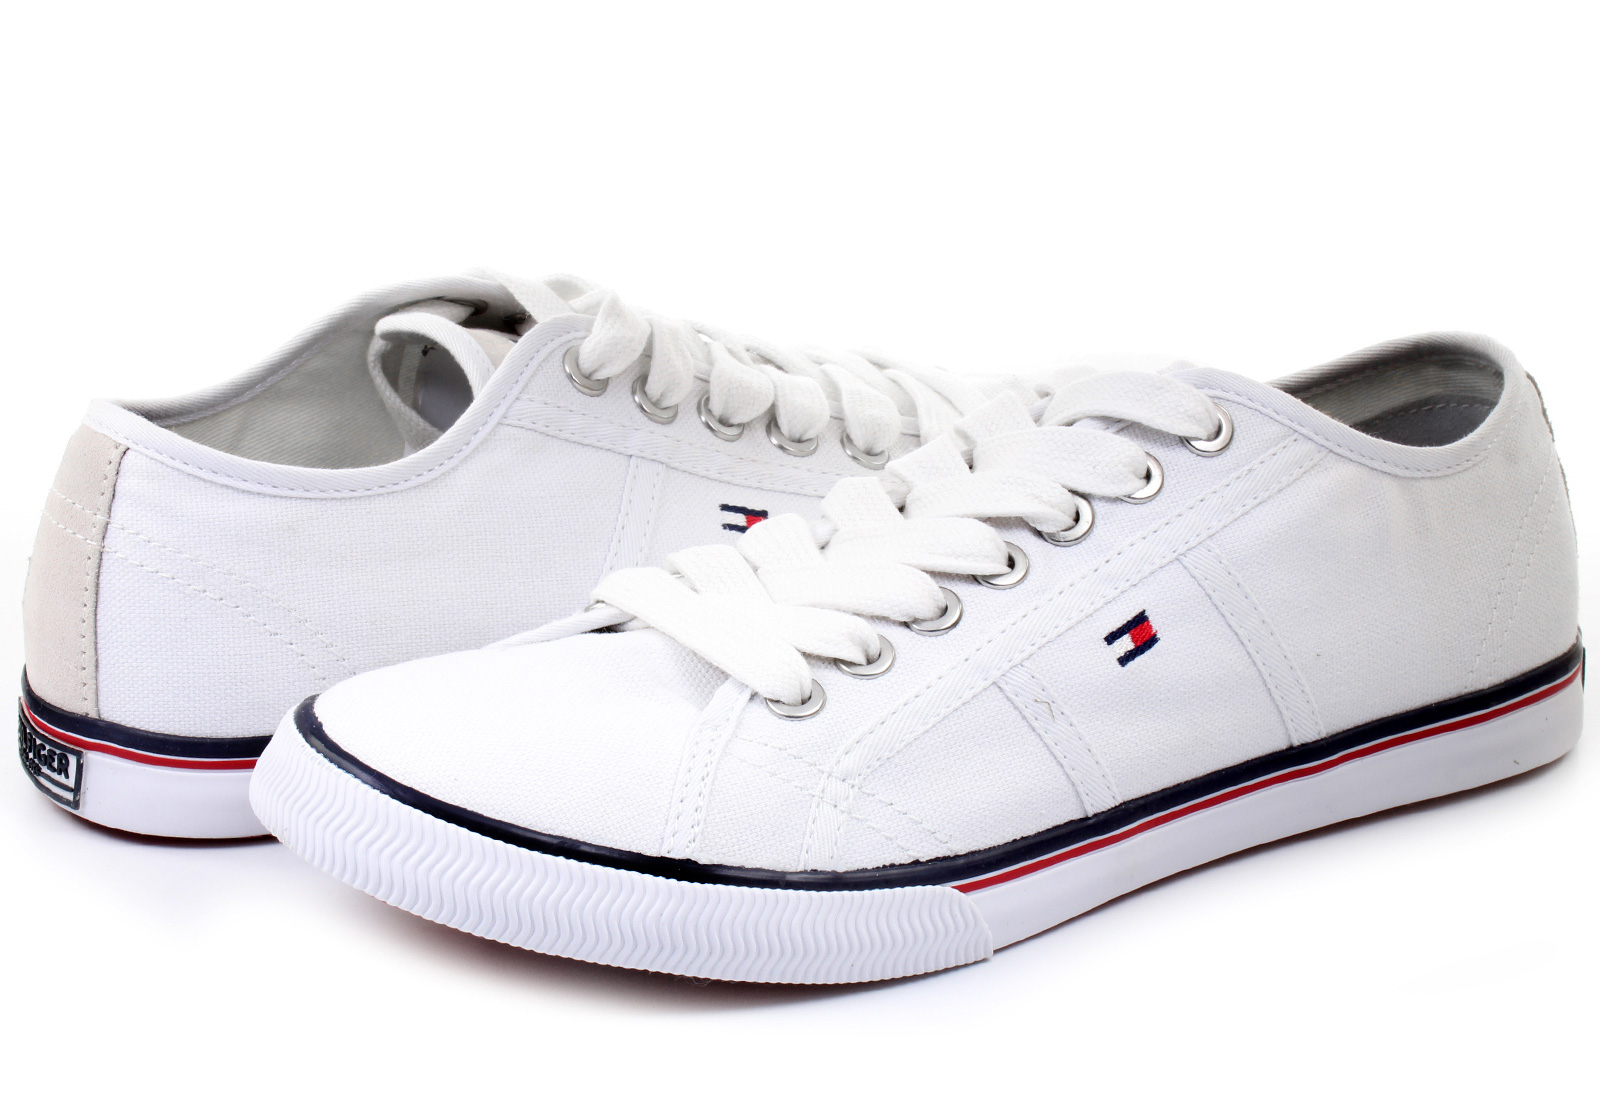 tommy hilfiger sneakers vantage 2a 14s 6983 100 online shop for sneakers shoes and boots. Black Bedroom Furniture Sets. Home Design Ideas